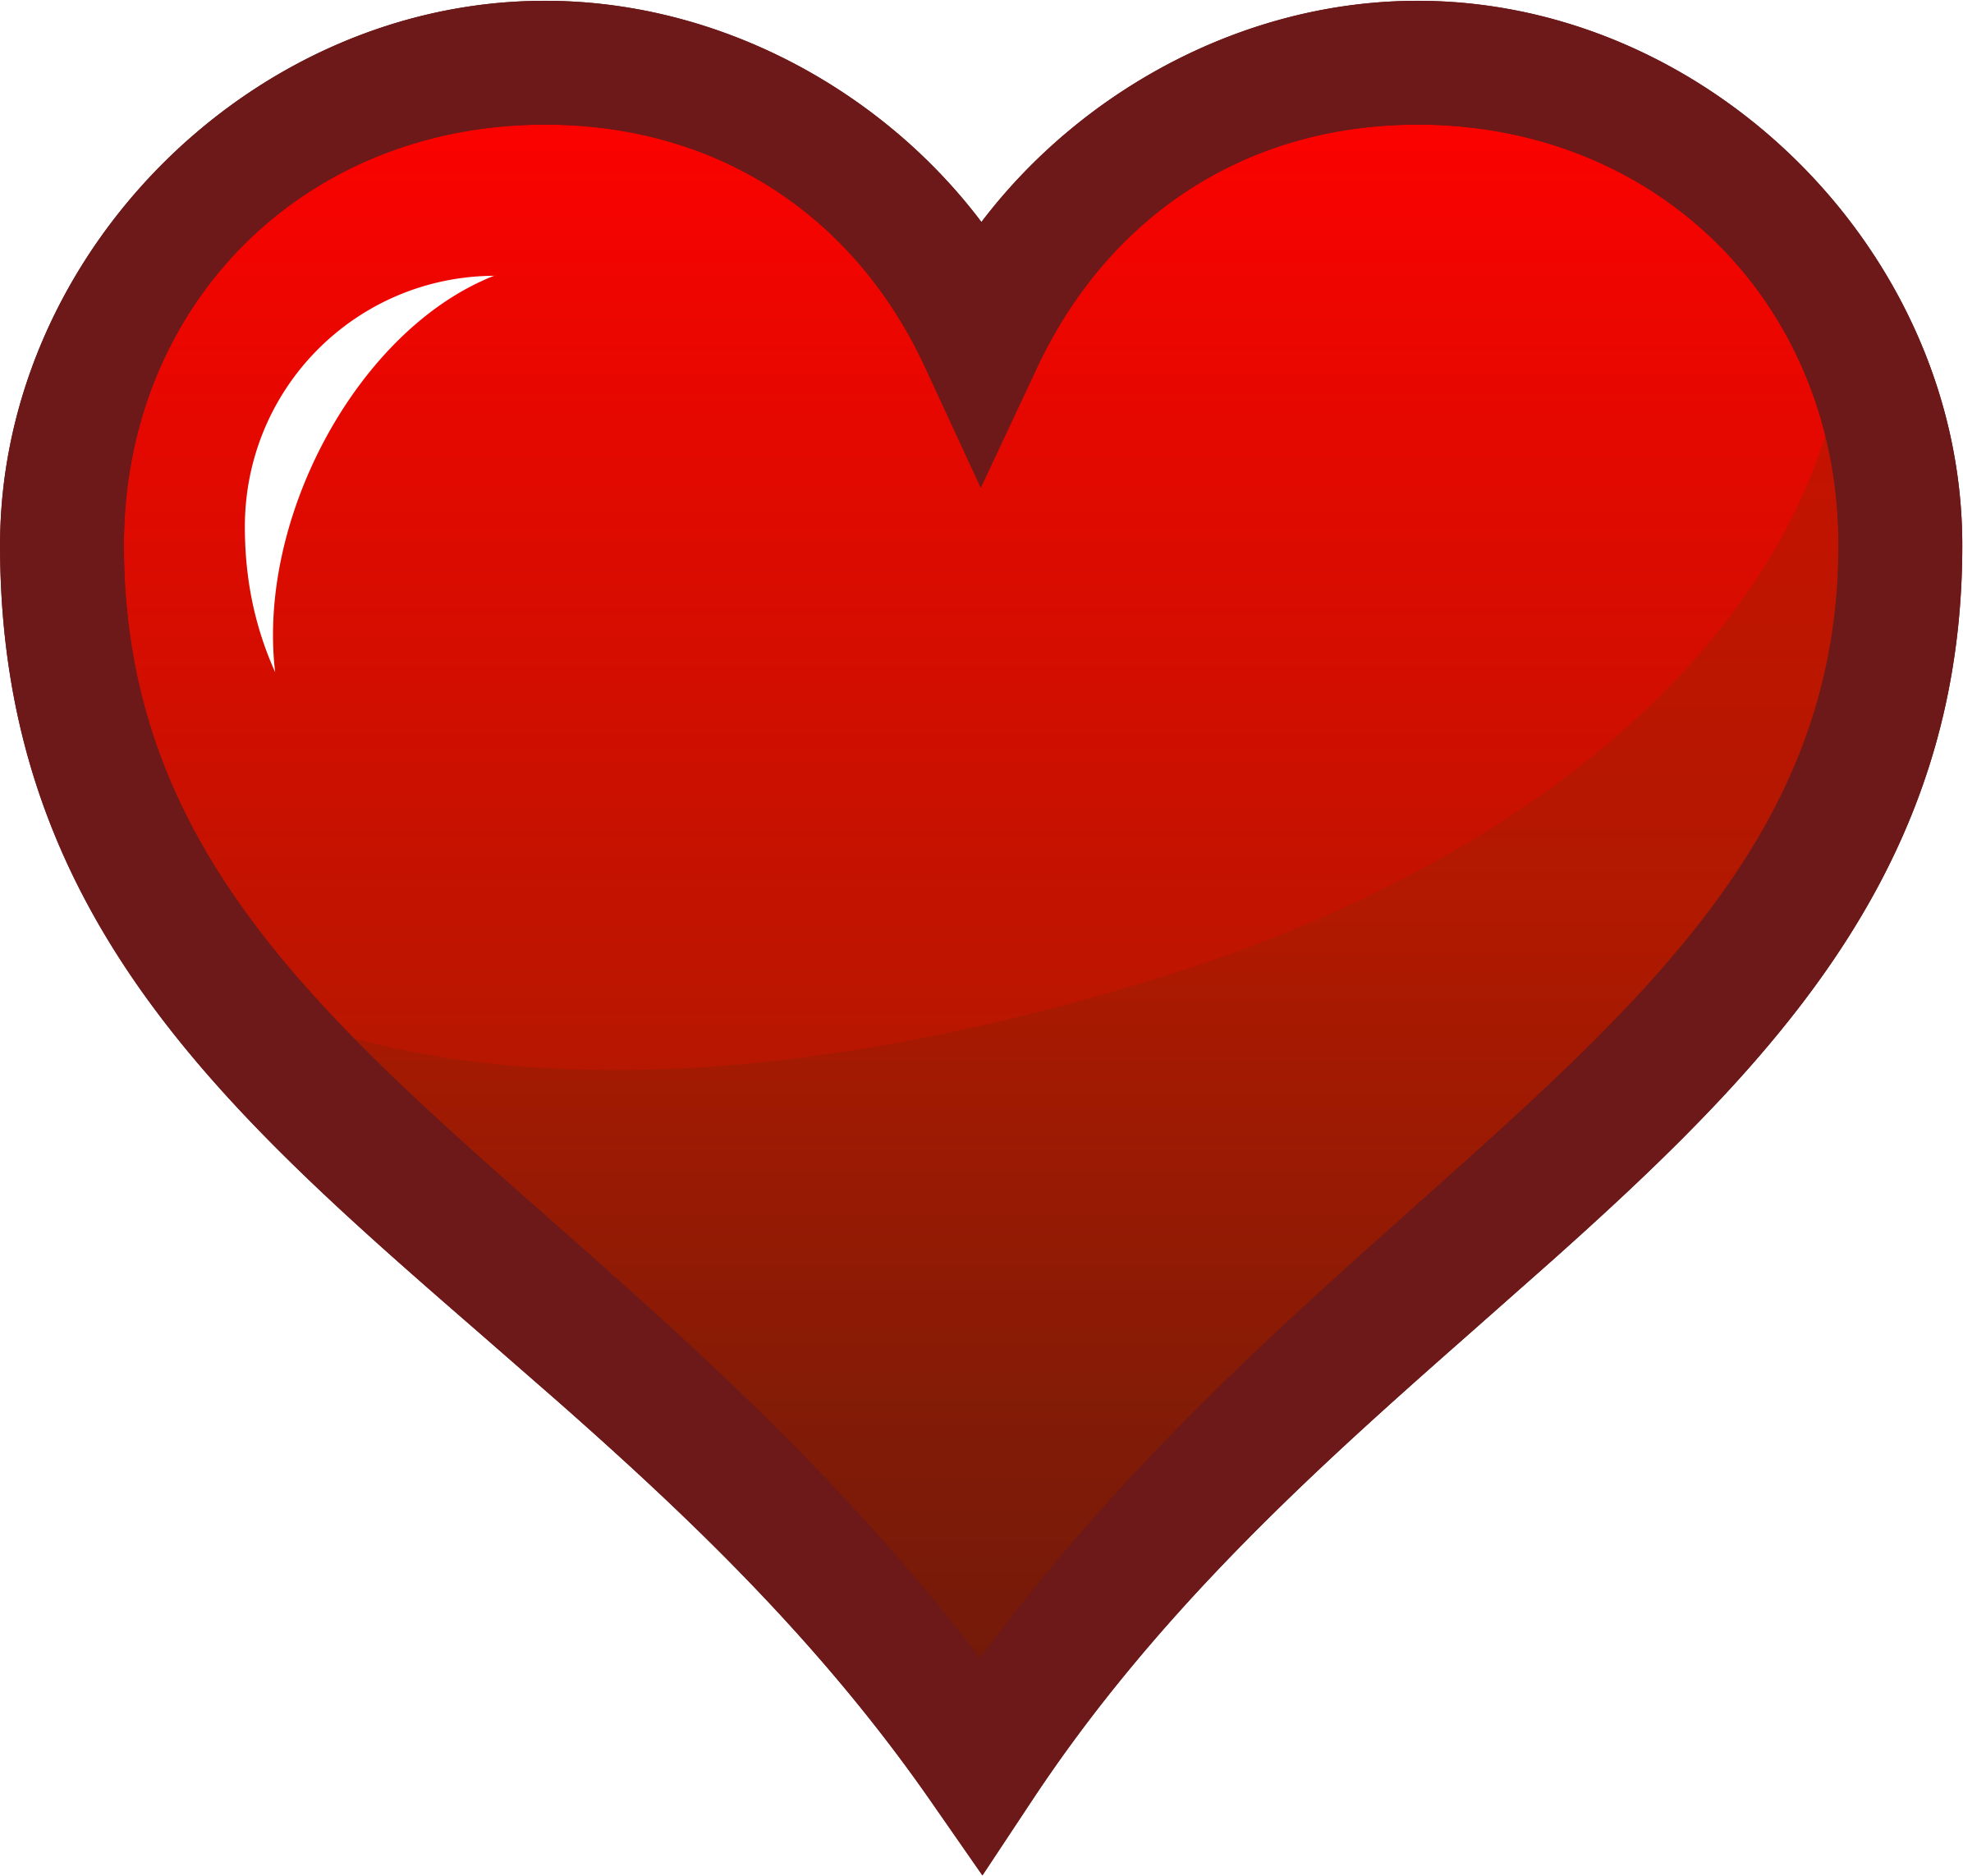 Hearts clipart icon. Red heart big image